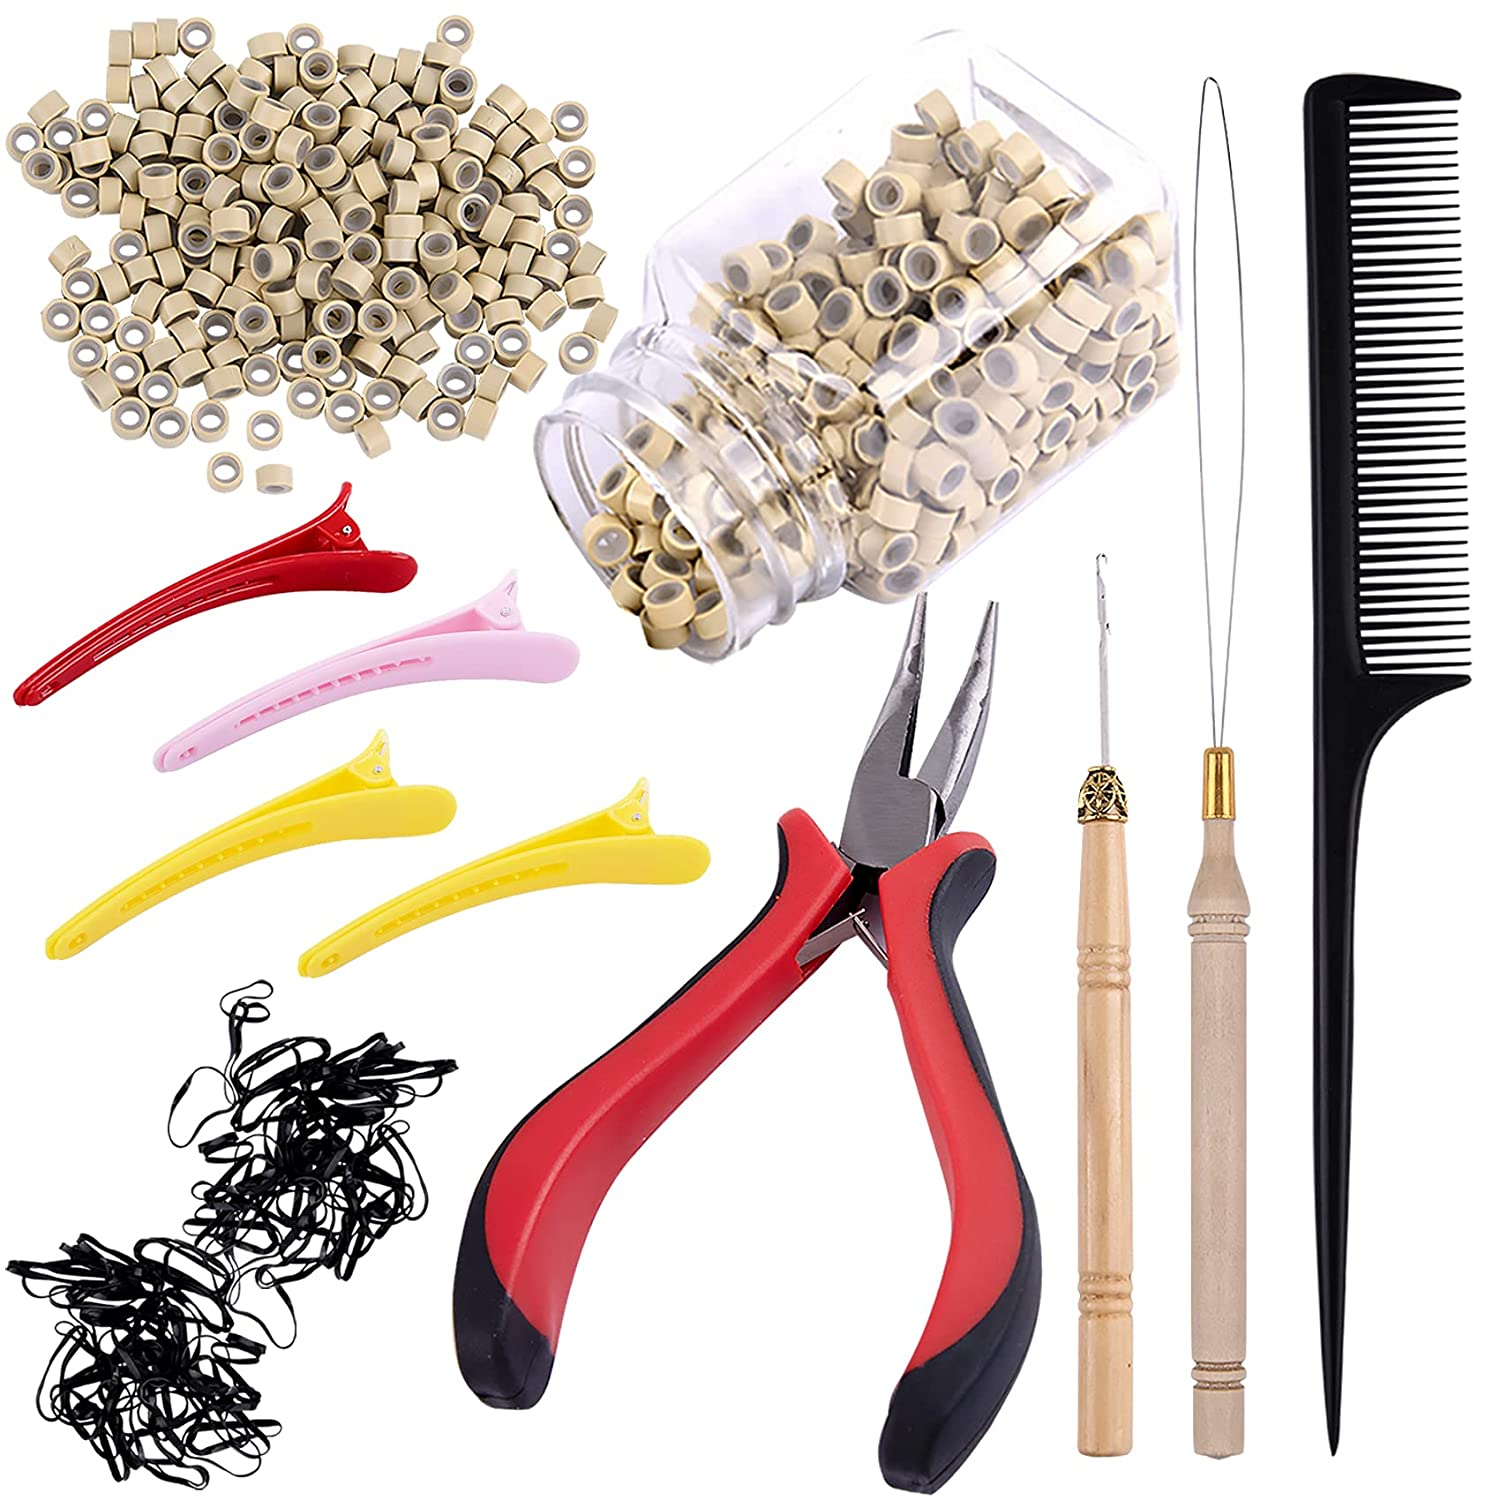 Duufin Hair Extensions Kit 500 Pcs Blonde Micro Ring Beads 1 Micro Beads Plier 2 Hook Needle Pulling Loop 4 Plastic Alligator Hair Clips 1 Comb and 2 Bags Black Mini Rubber Hair Elastic